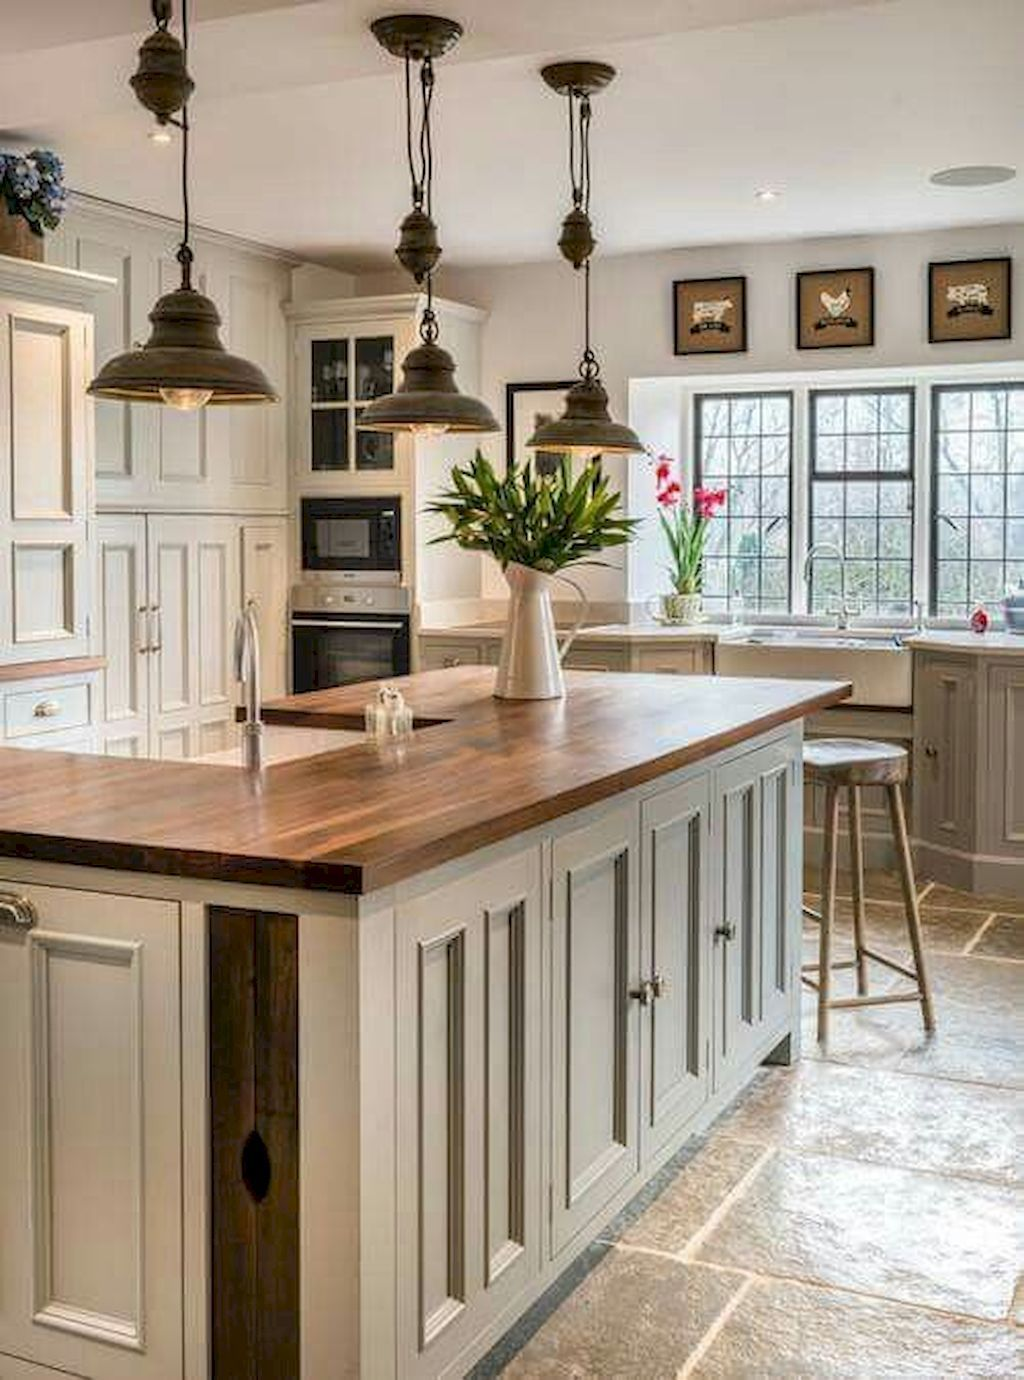 Https Homebnc Com Best Rustic Farmhouse Interior Design Ideas Farmhouseinterior: Nice 40 Rustic Modern Farmhouse Kitchen Design Ideas Https://lovelyving.com/2017/09/06/40-rustic